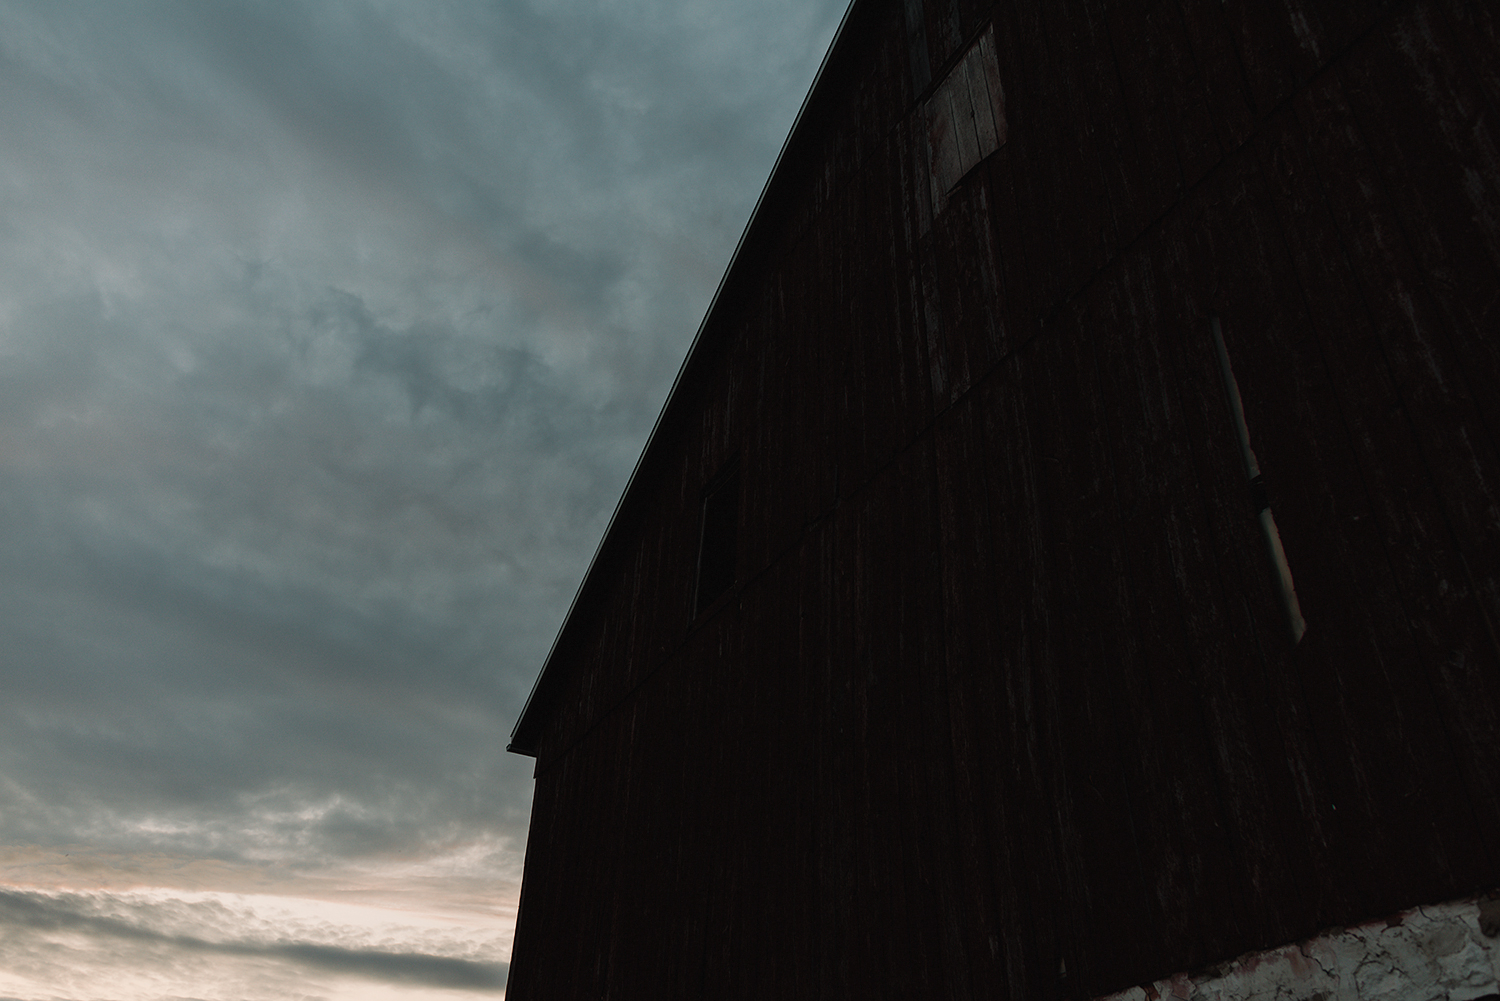 cambium-farms-wedding-ryanne-hollies-photography-gay-wedding-lgbtq-trendy-cool-badass-junebug-weddings-inspiration-wedding-reception-in-a-barn-portraits-at-sunset-carzy-colours-in-the-sky-barn-at-night.jpg